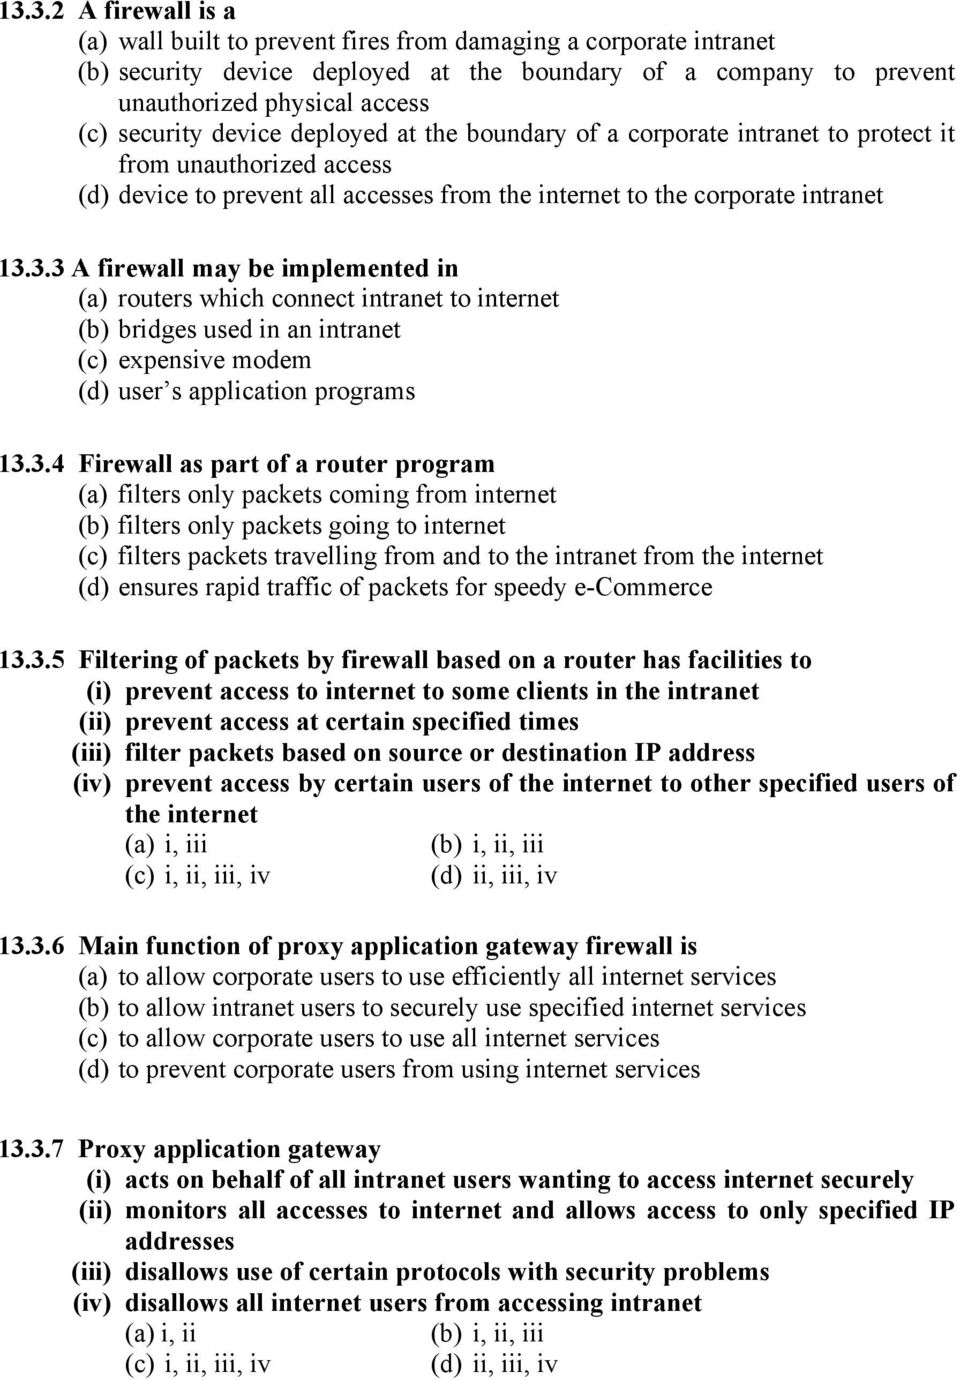 3.3 A firewall may be implemented in (a) routers which connect intranet to internet (b) bridges used in an intranet (c) expensive modem (d) user s application programs 13.3.4 Firewall as part of a